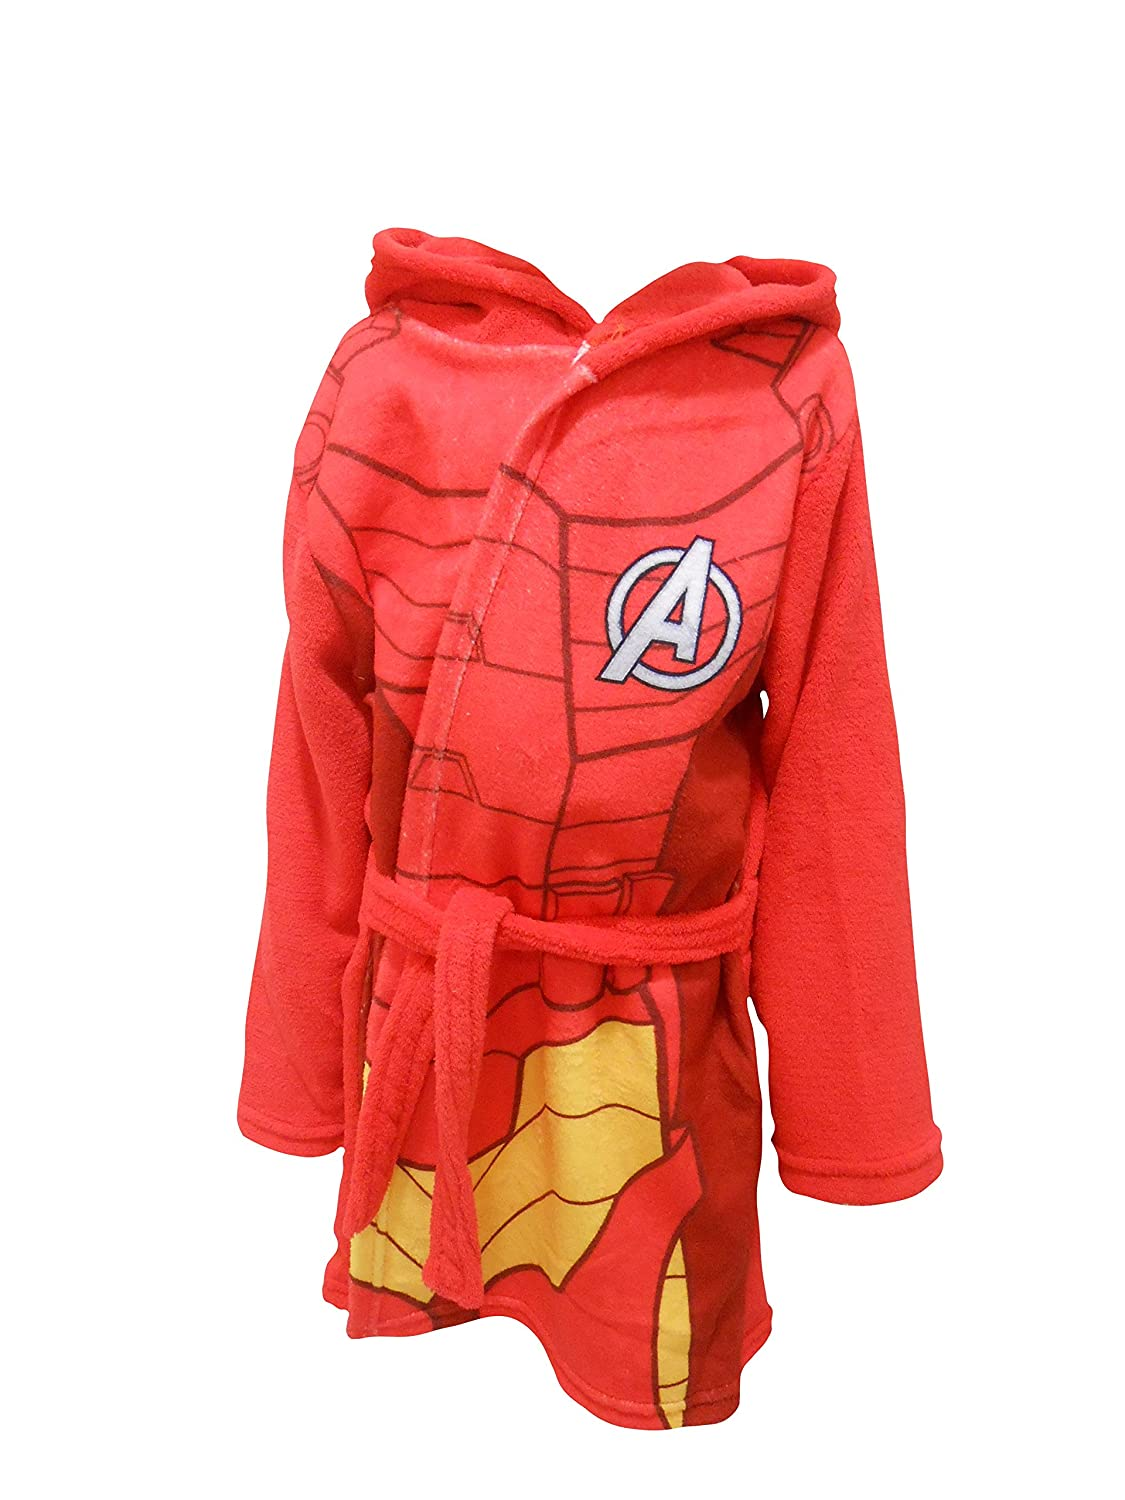 Iron Man Marvel Avengers Kids Hooded Fleece Bathrobe Dressing Gown The Cookie Company